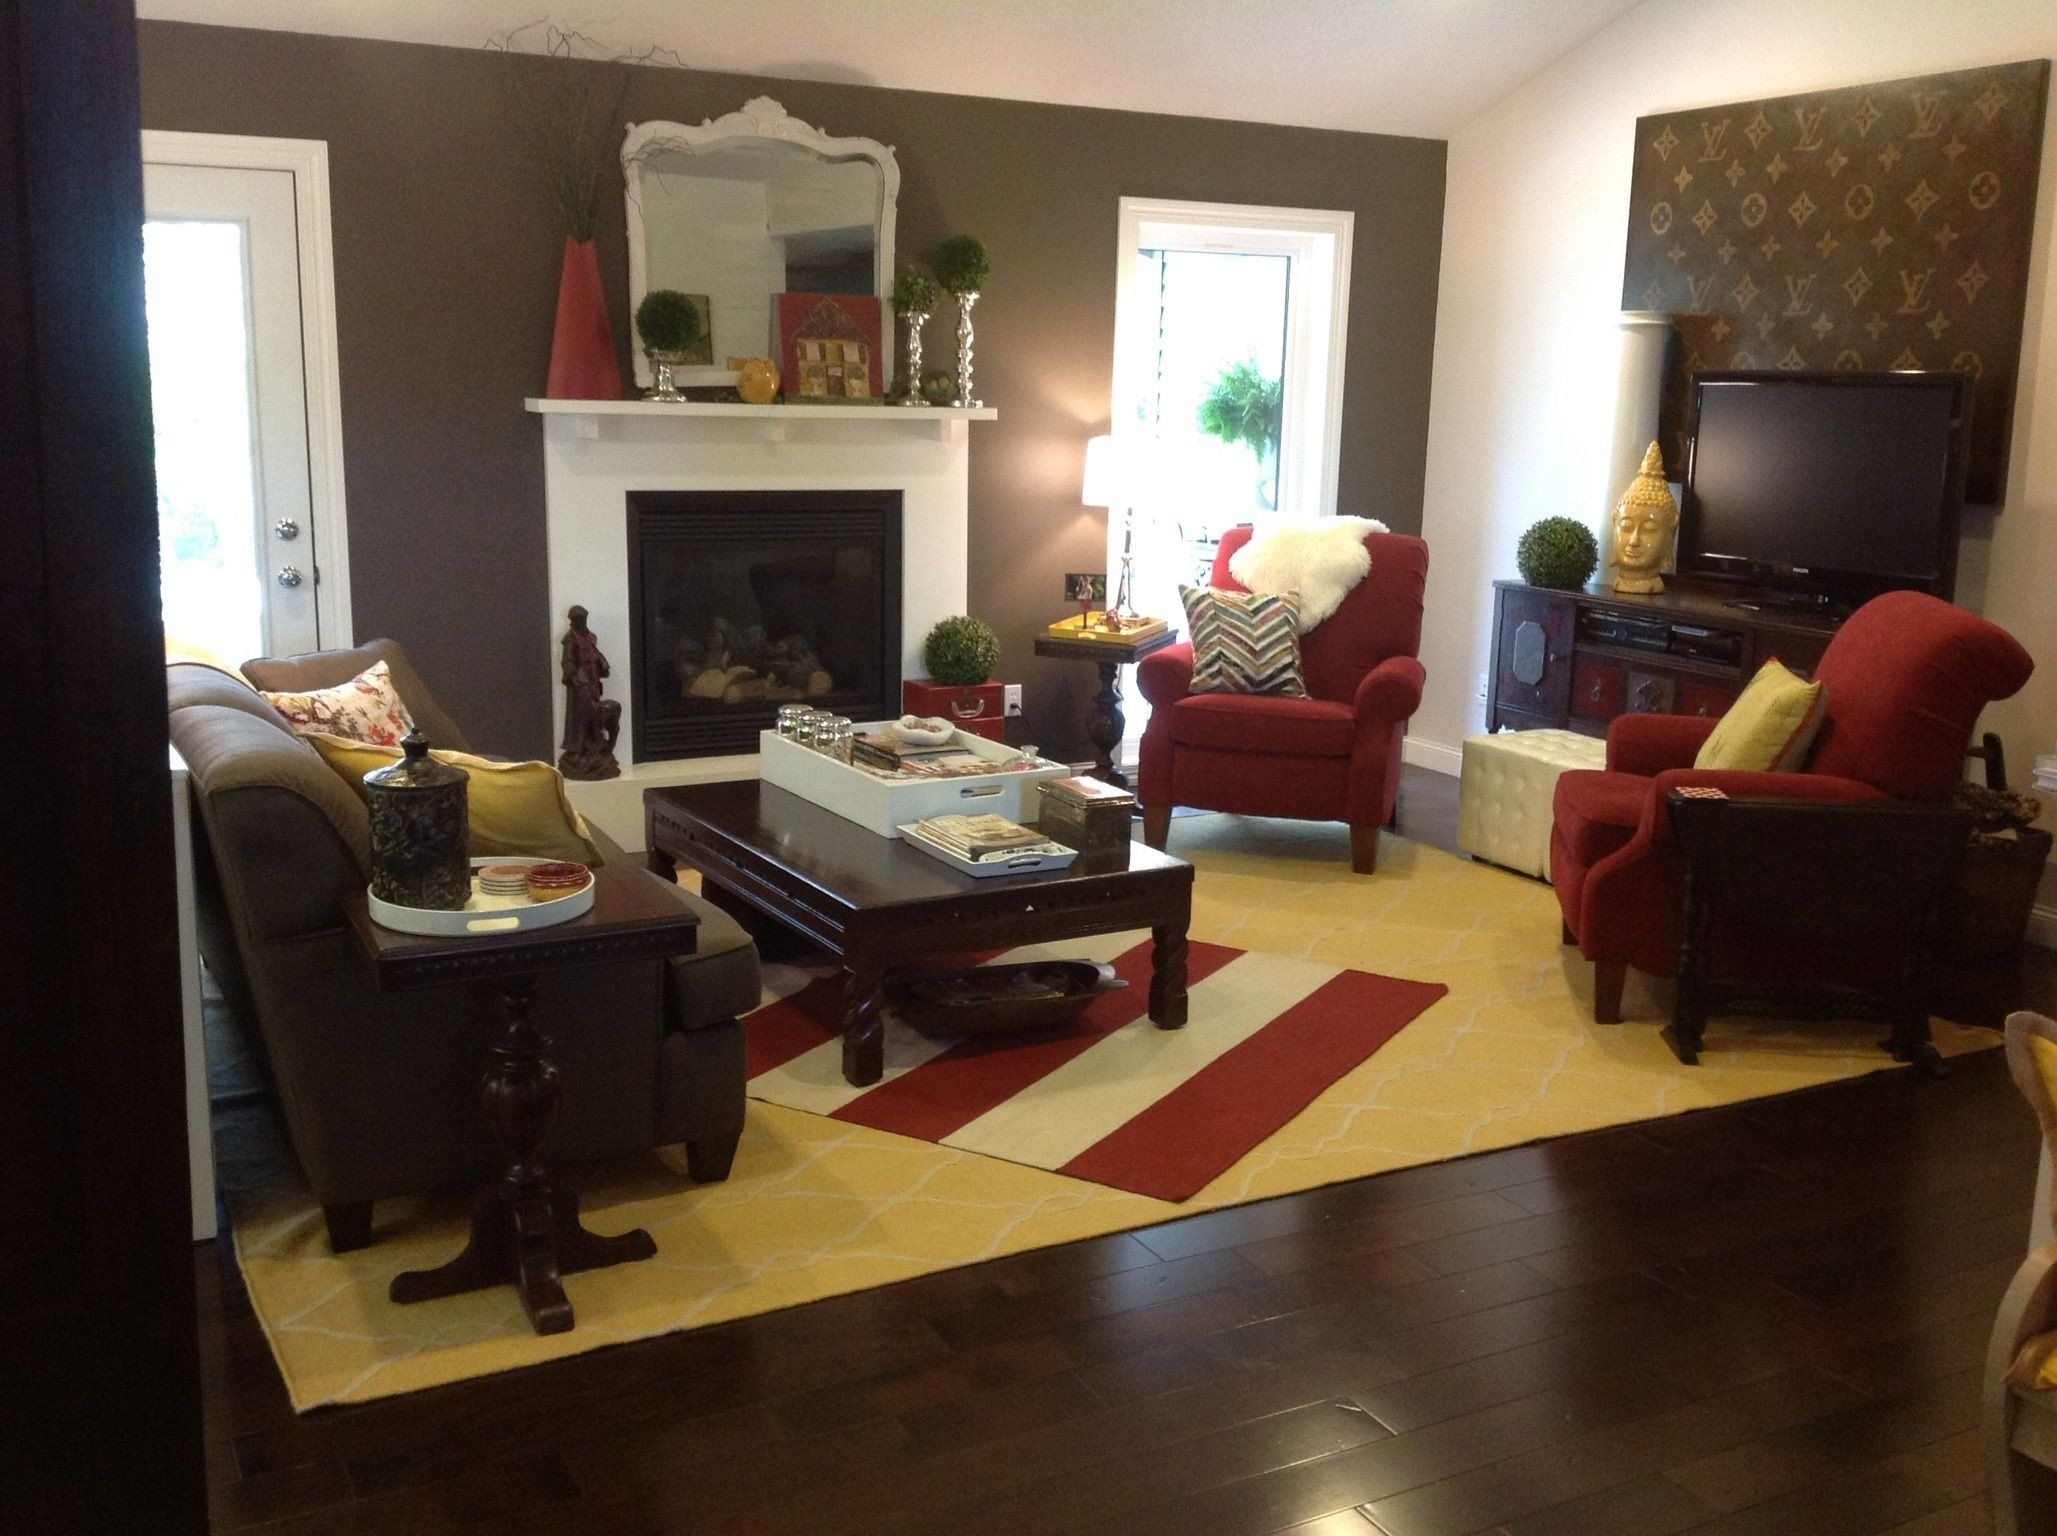 Red And Brown Living Room Ideas My Living Room Red Brown And A Splash Of Yellow In 2020 Brown Living Room Living Room Red Apartment Living Room #yellow #and #brown #living #room #decorating #ideas